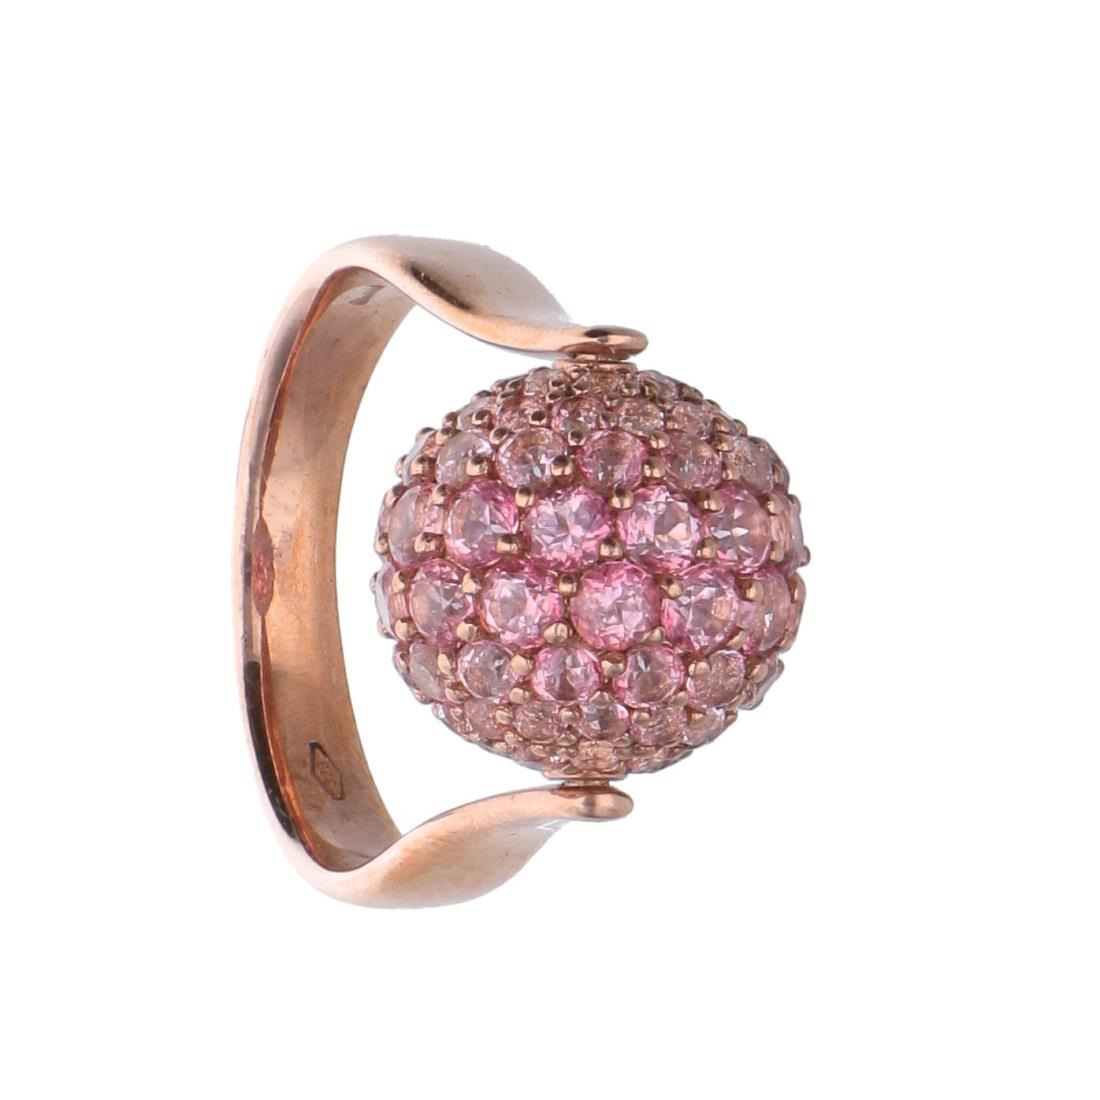 Sphere ring with pink topazes - ROBERTO DEMEGLIO